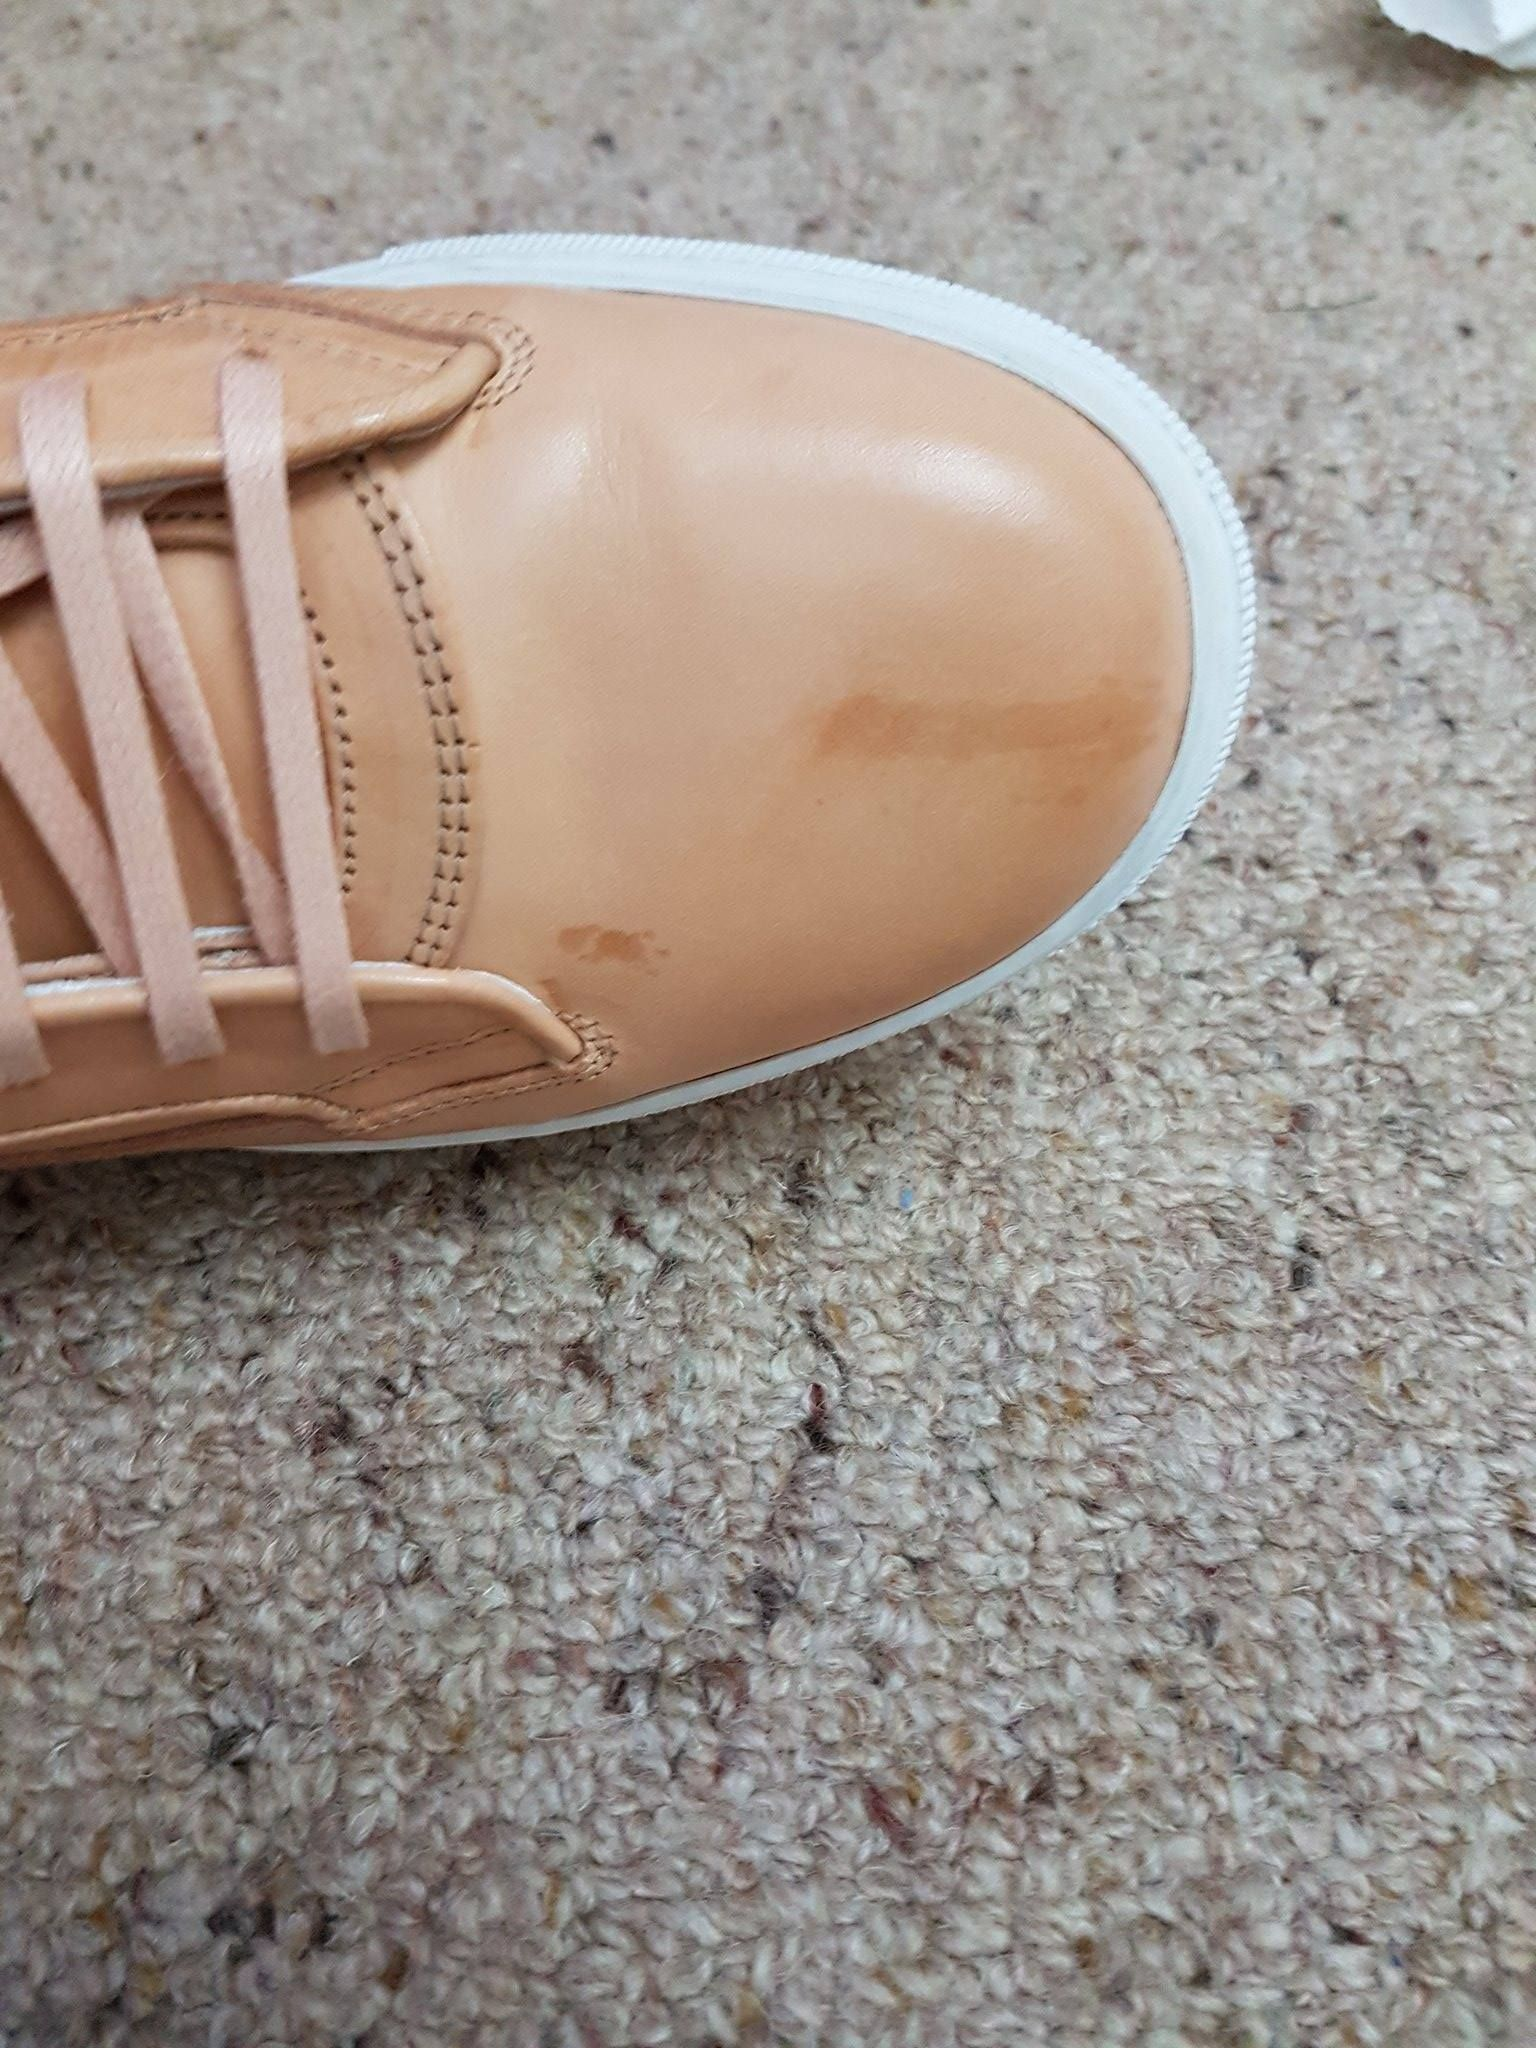 How To Remove Water Stain From Tan Leather Shoes Piel Color Café Claro Zapatos